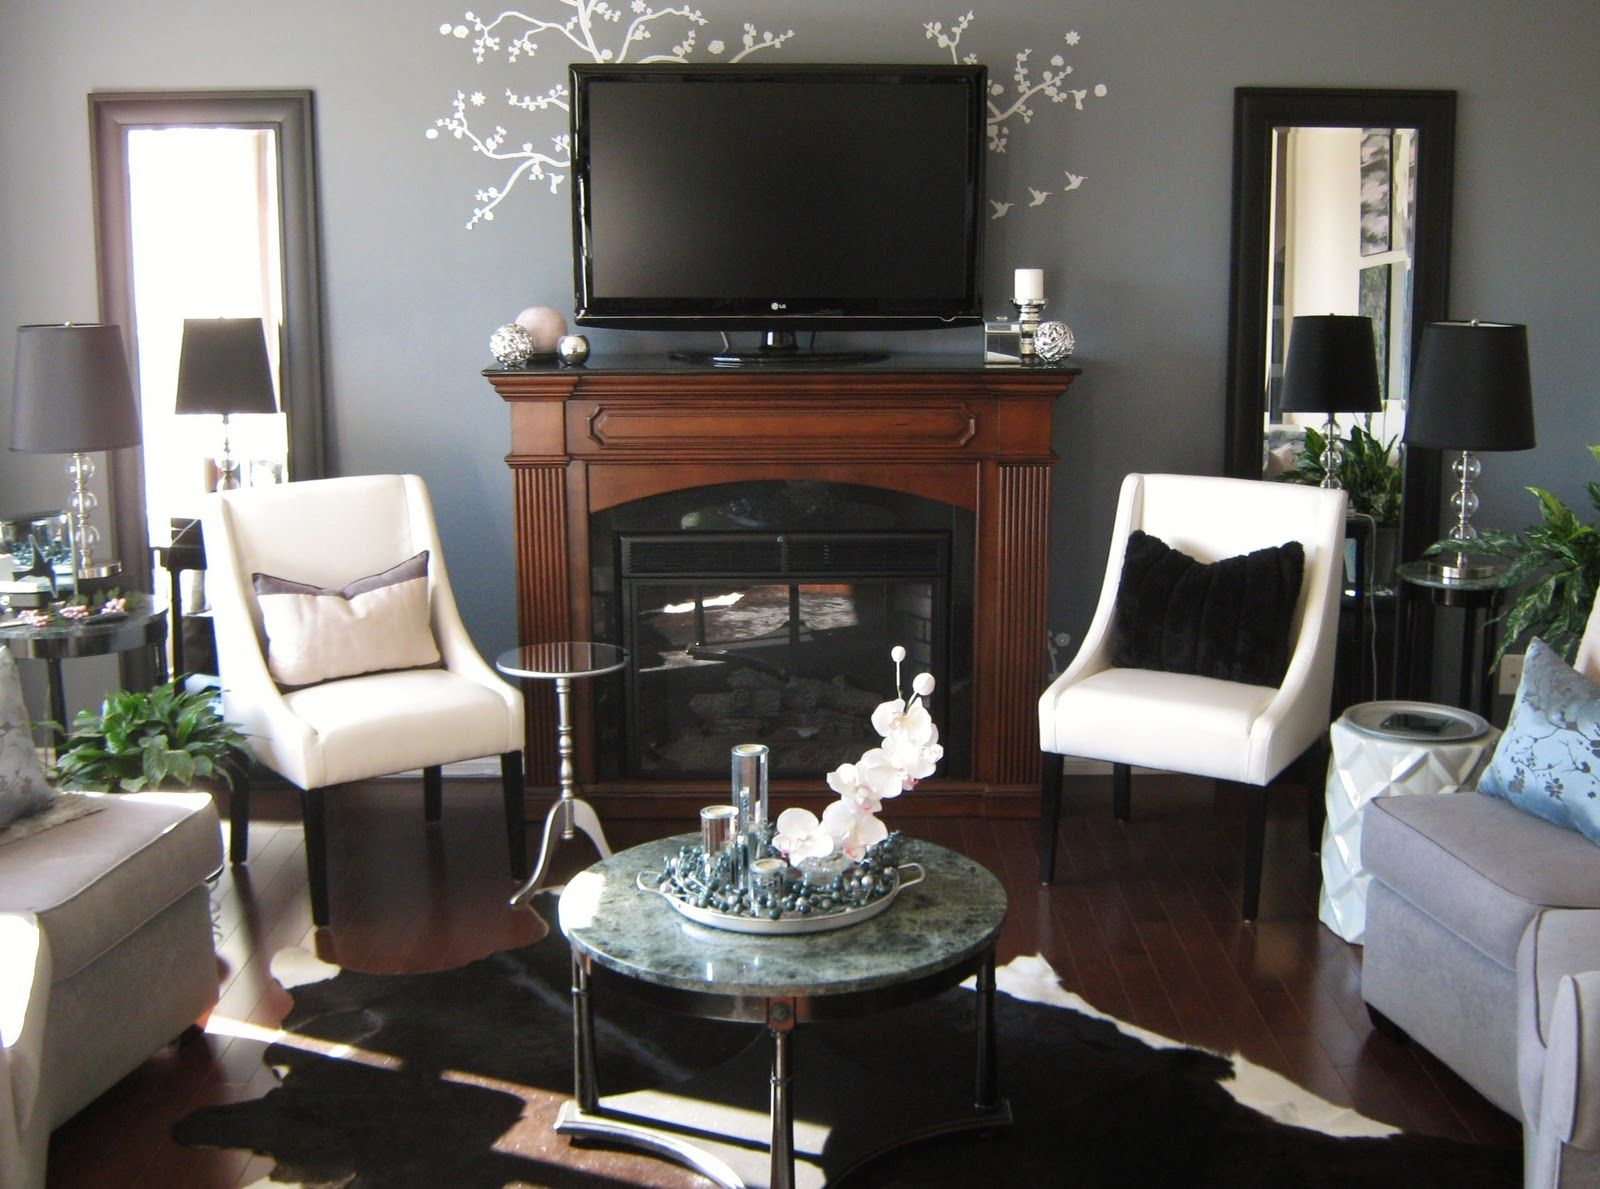 Coffee Table Top Decorating Ideas Google Search Powder Room Decor Black Living Room Rugs In Living Room